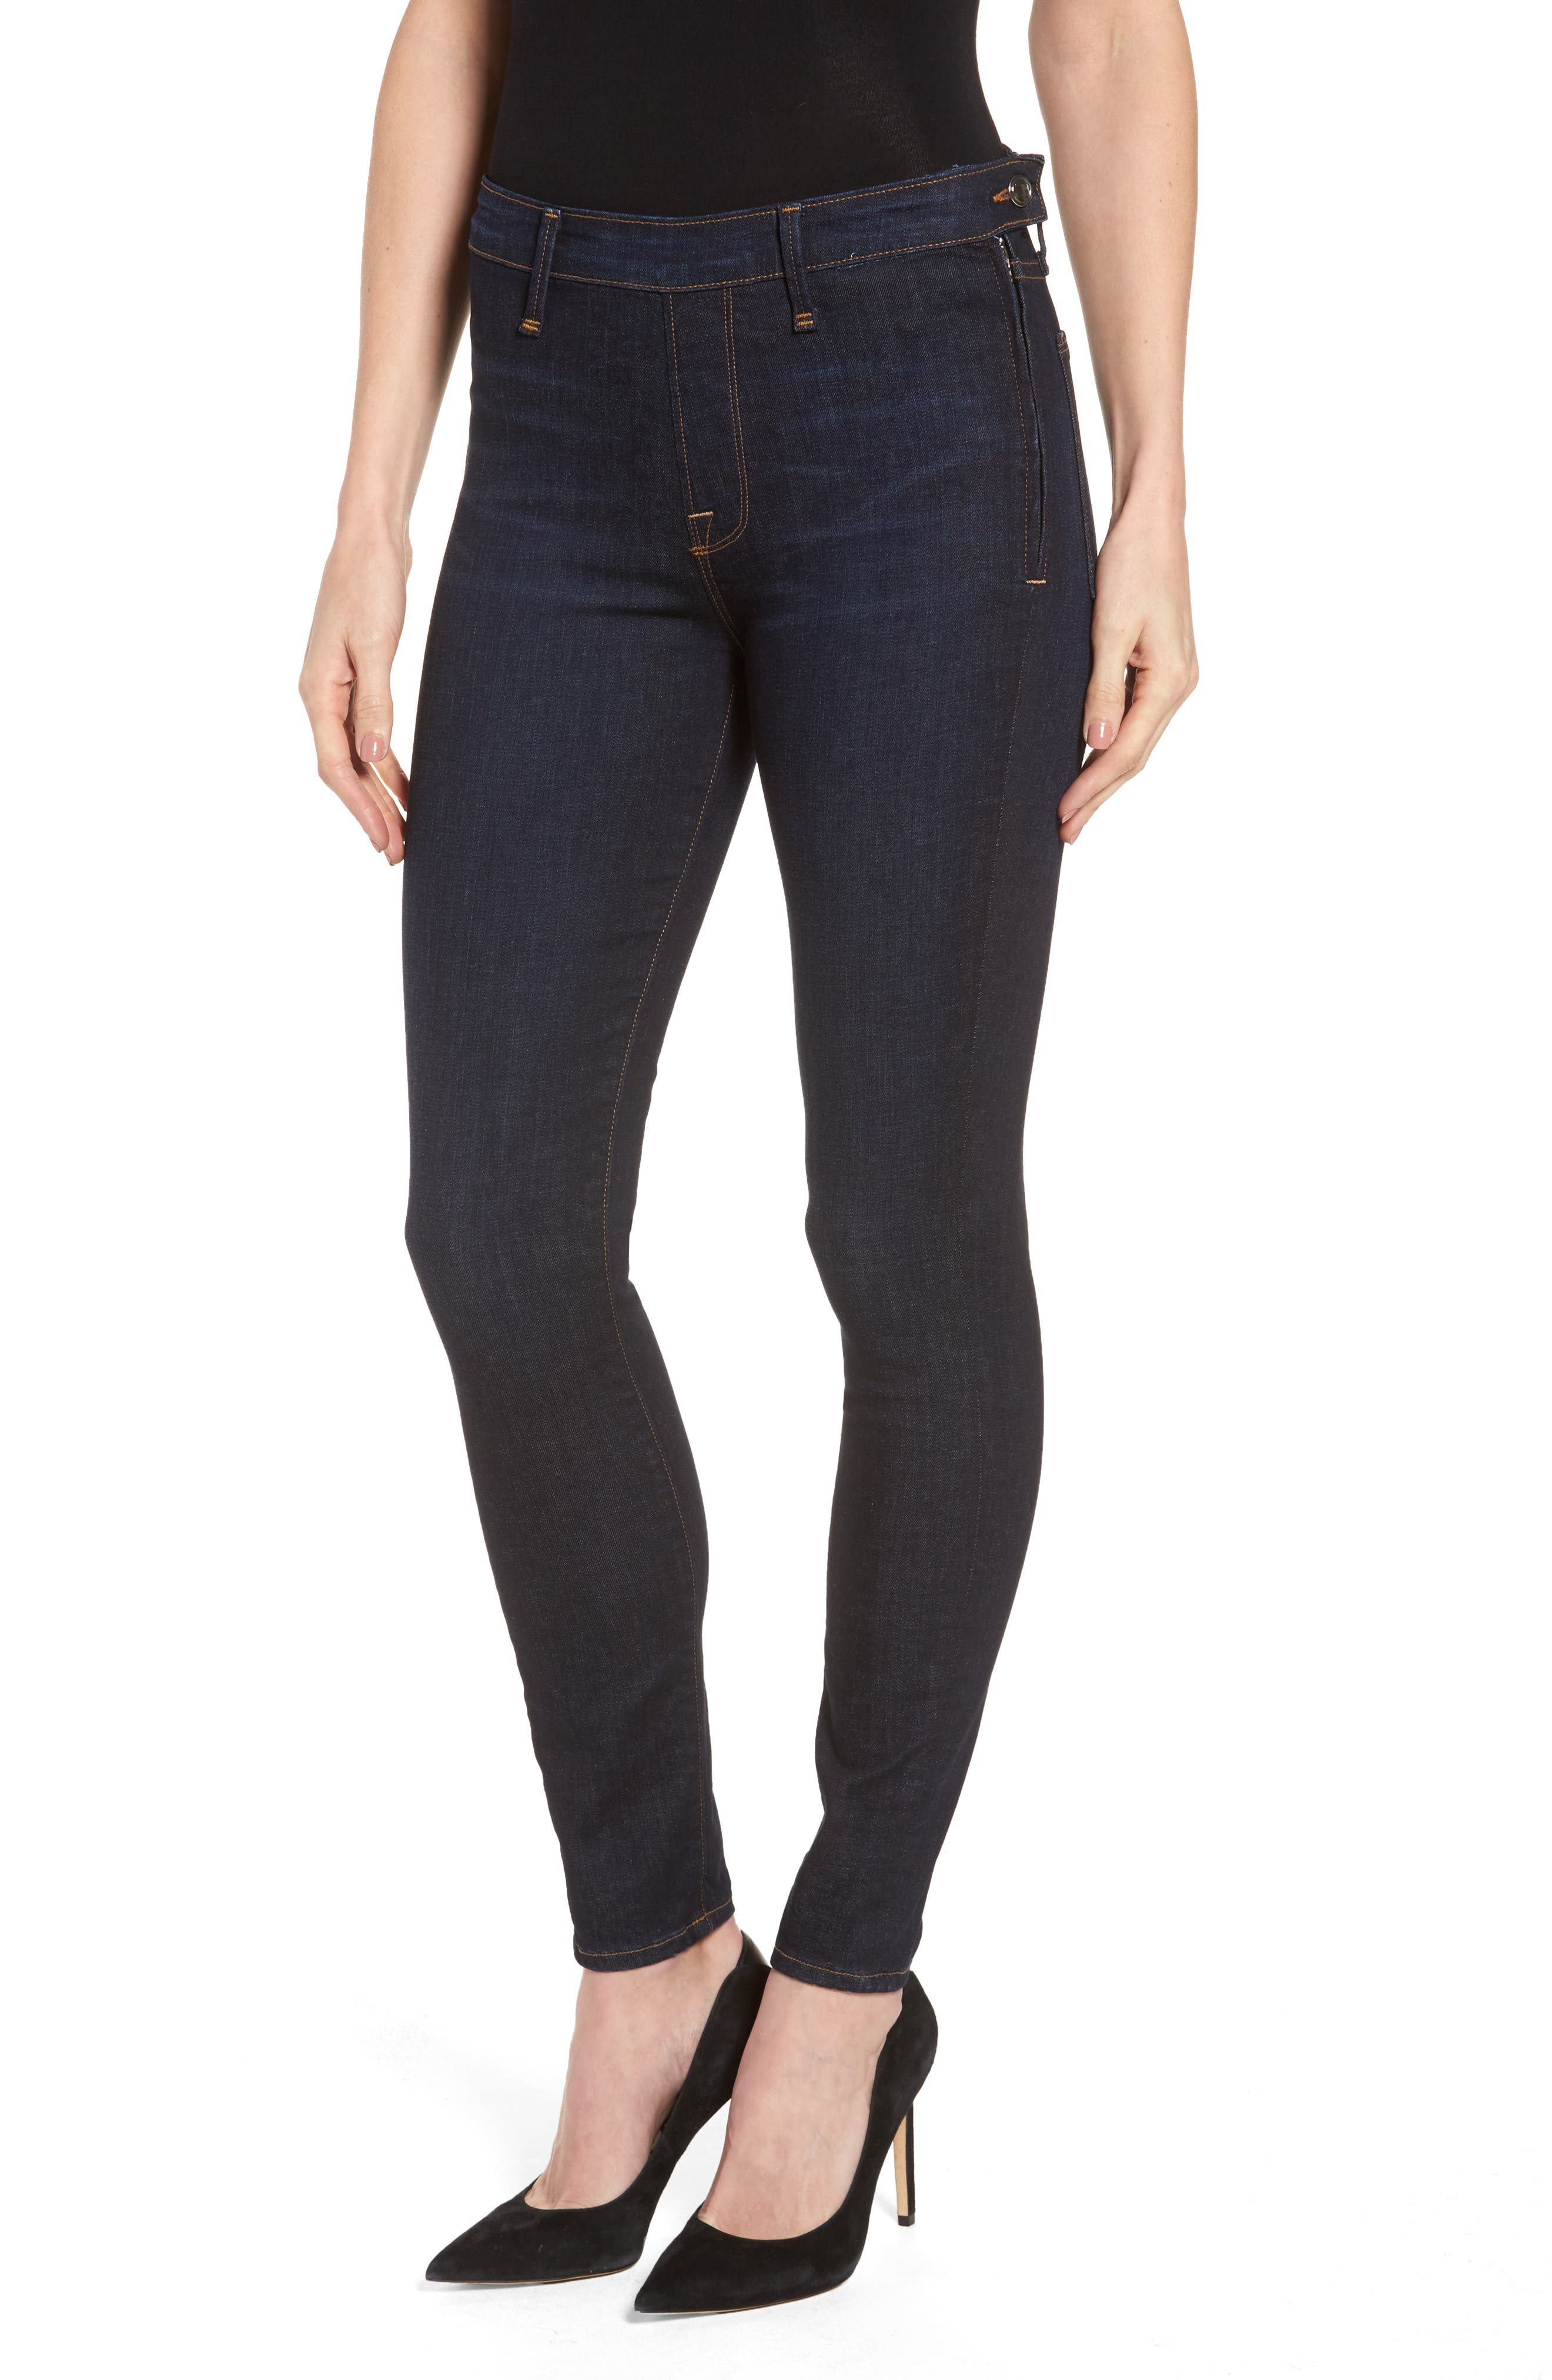 Main Image - Good American High Waist Side Zip Skinny Jeans (Blue 051) (Extended Sizes)